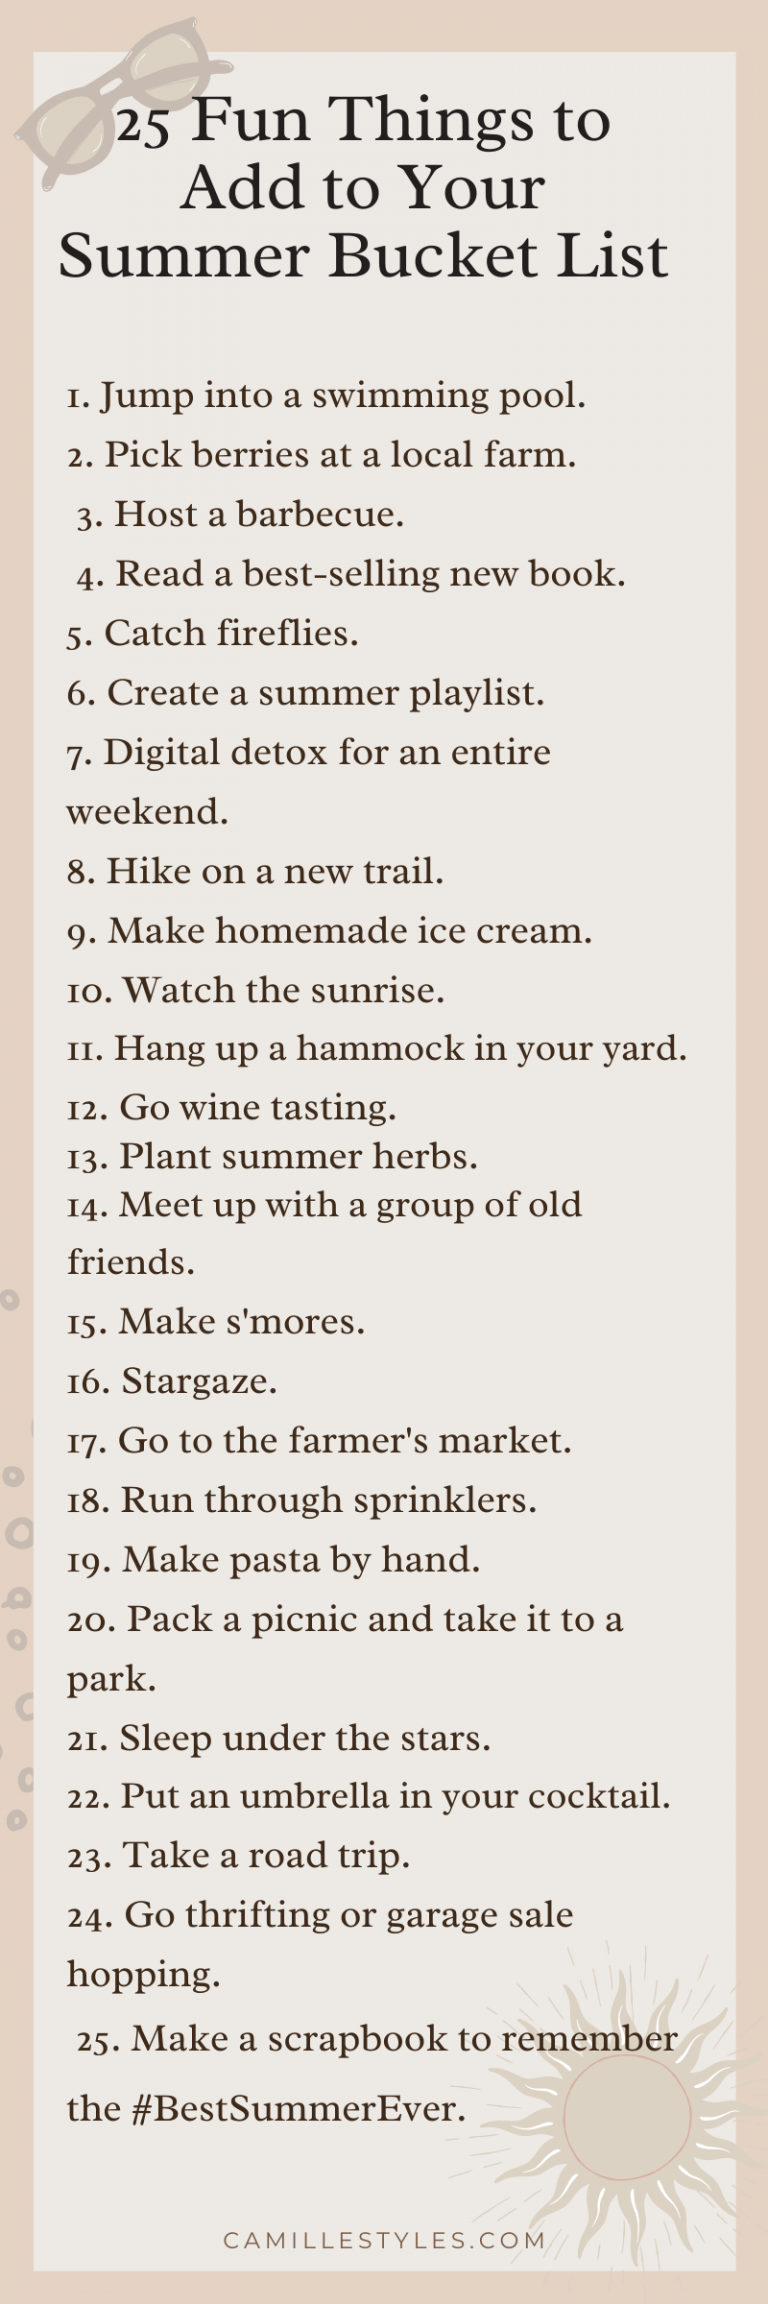 Summer Bucket List 20 Fun Things to Do This Summer